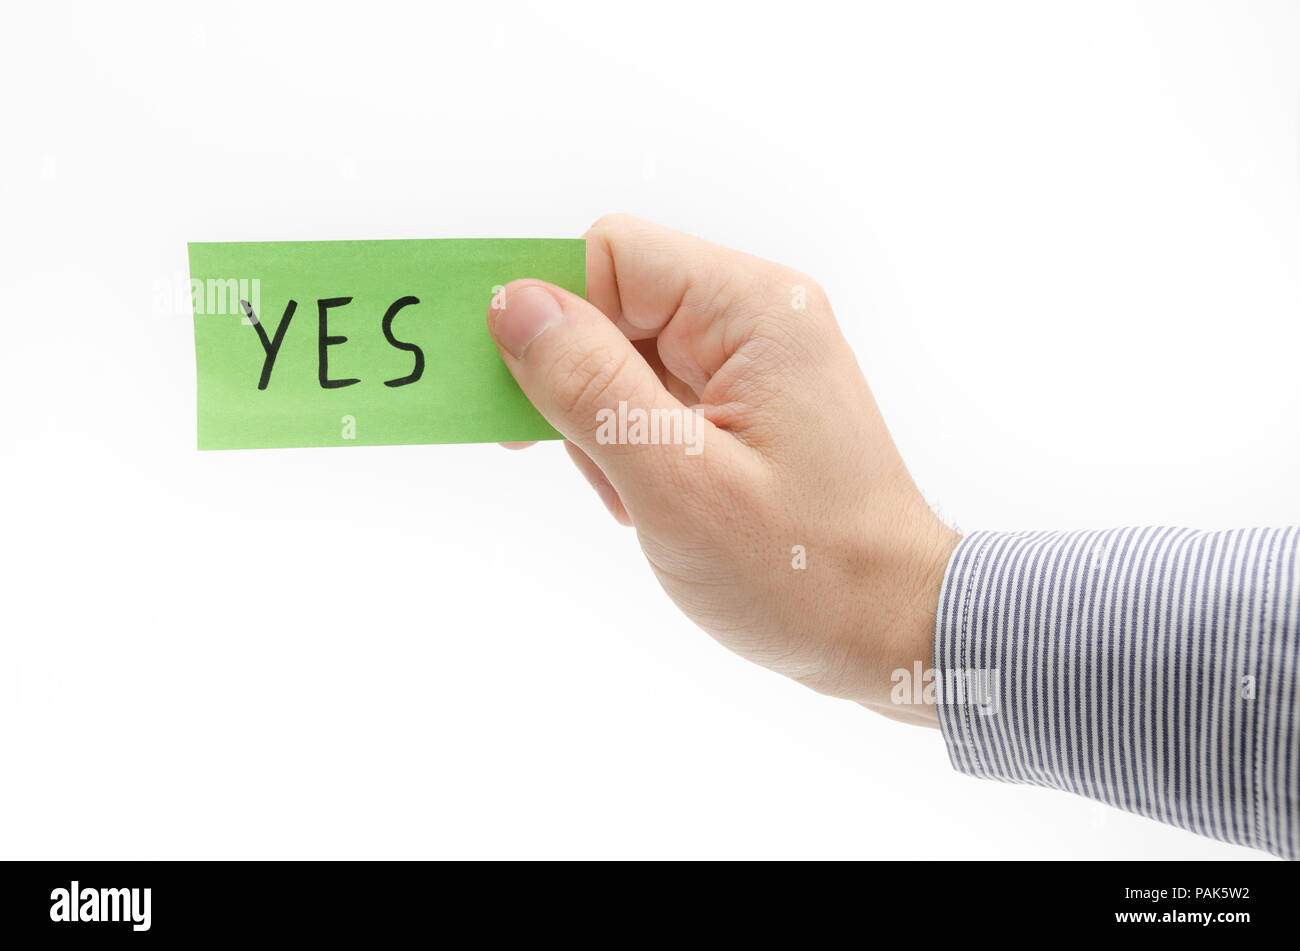 YES word suggesting approval and confirmation - Stock Image